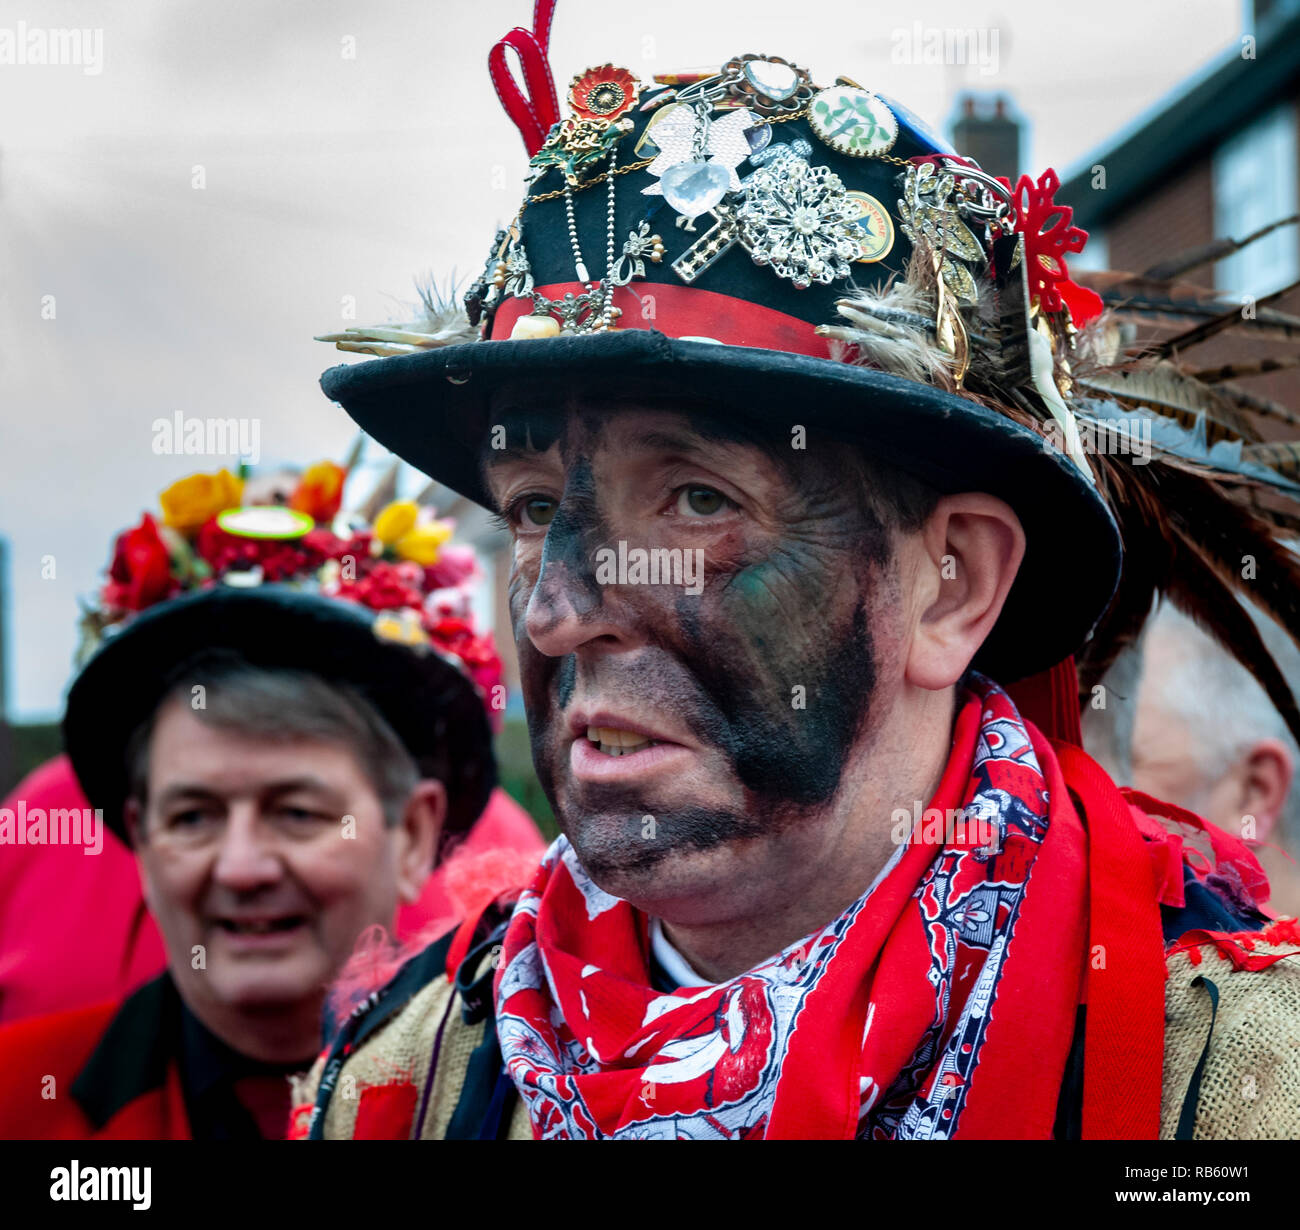 Haxey, Lincolnshire, England, UK – The Fool participates in the traditional ancient custom of The Haxey Hood since the 14th Century. Stock Photo